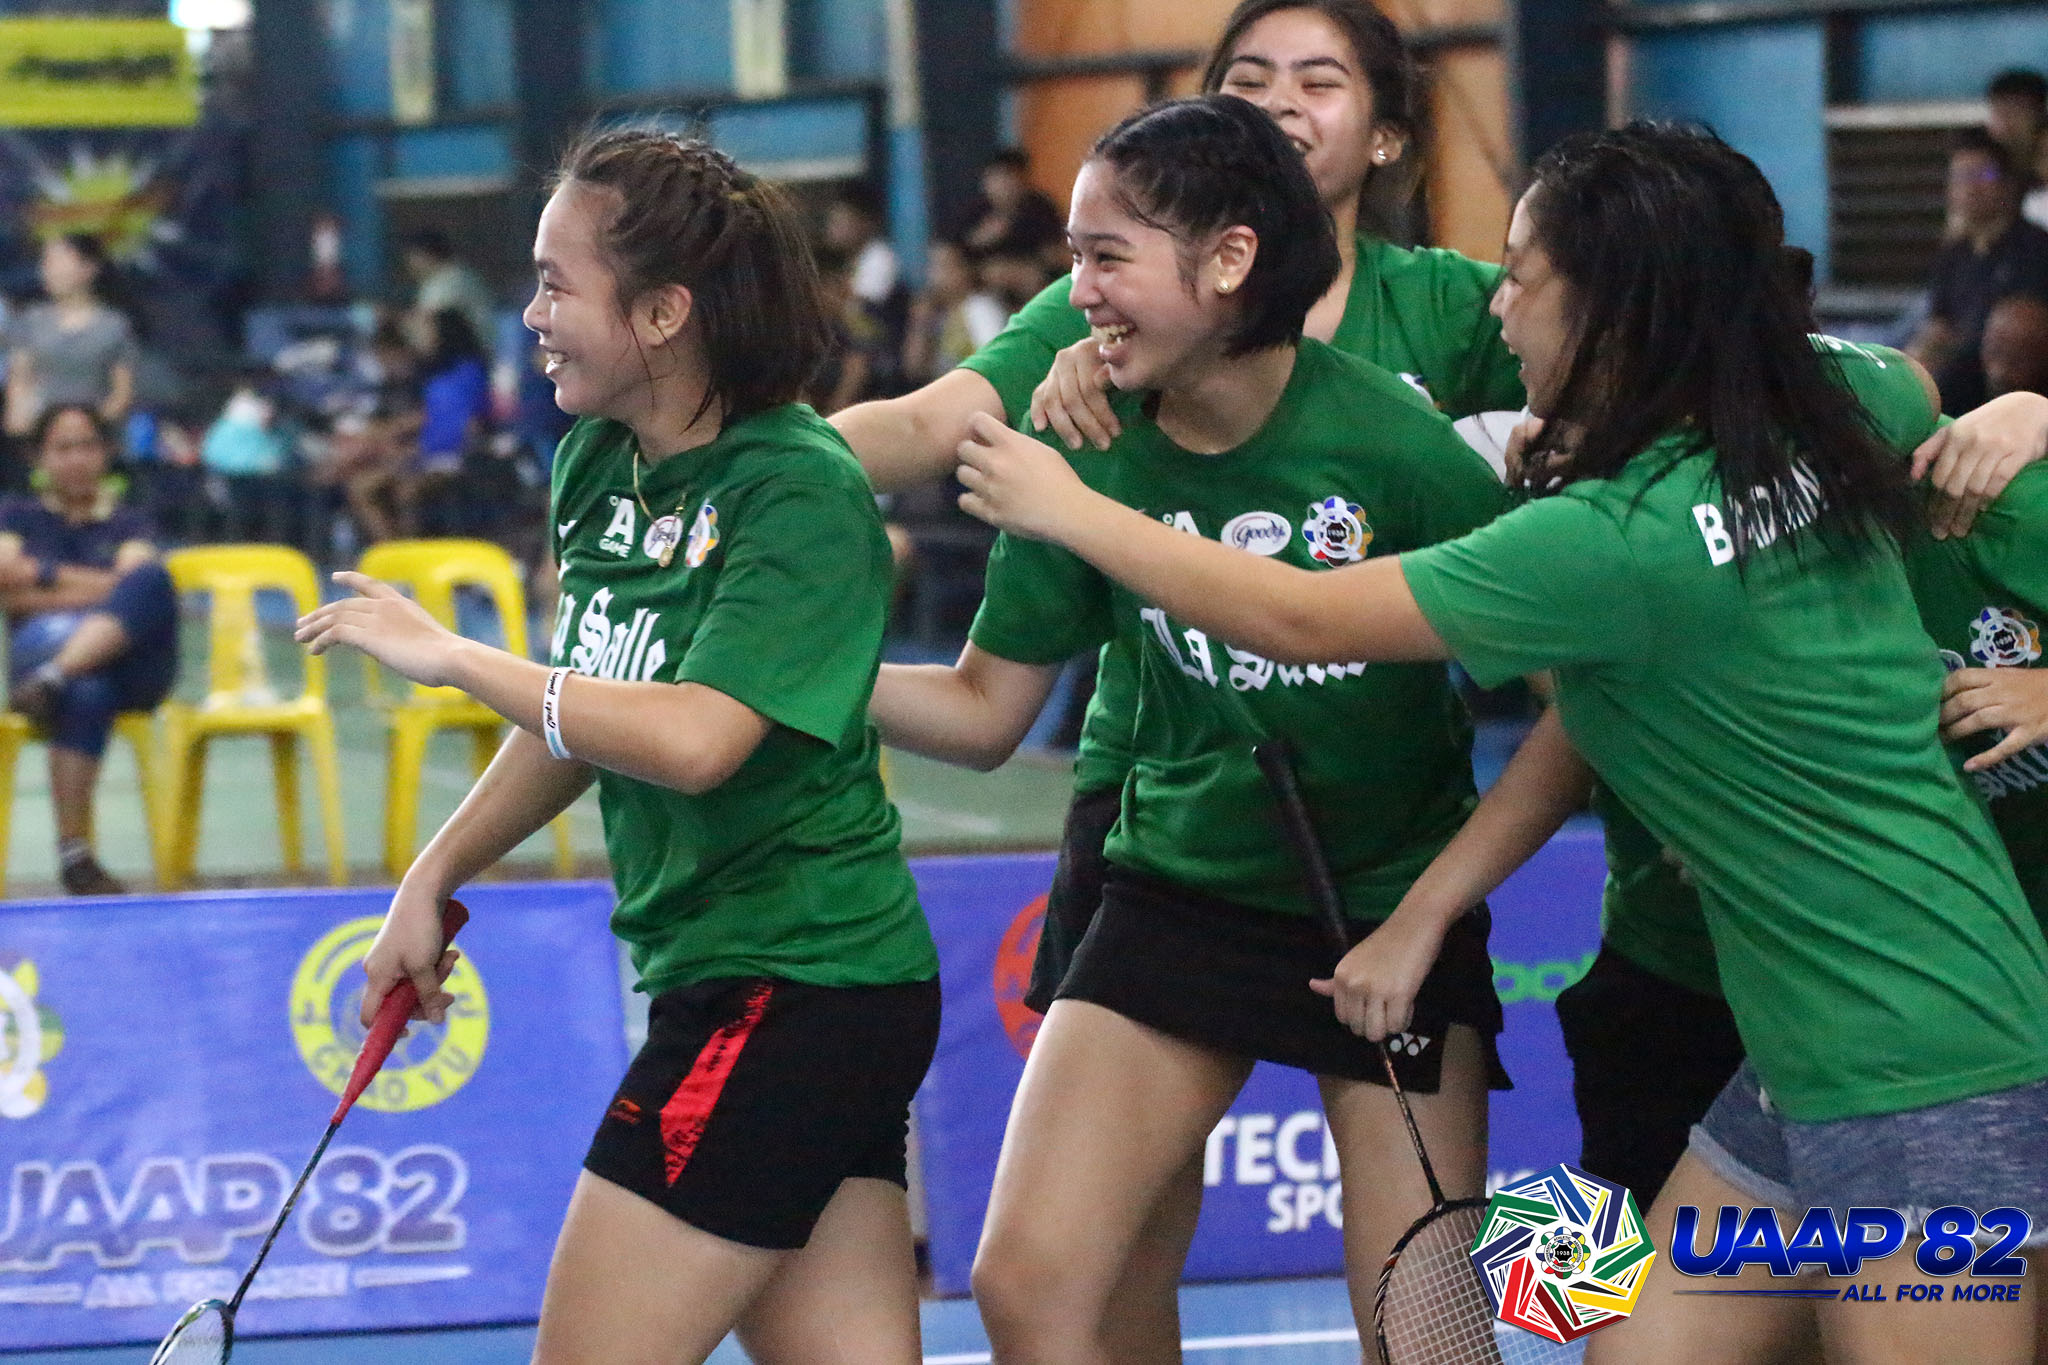 UAAP-82-Womens-Badminton-Semifinal-DLSU-v-UP-Boloron-Cruz Ateneo dominates, La Salle takes vengeance to set up UAAP Women's Badminton Finals ADMU Badminton DLSU News NU UAAP UP  - philippine sports news